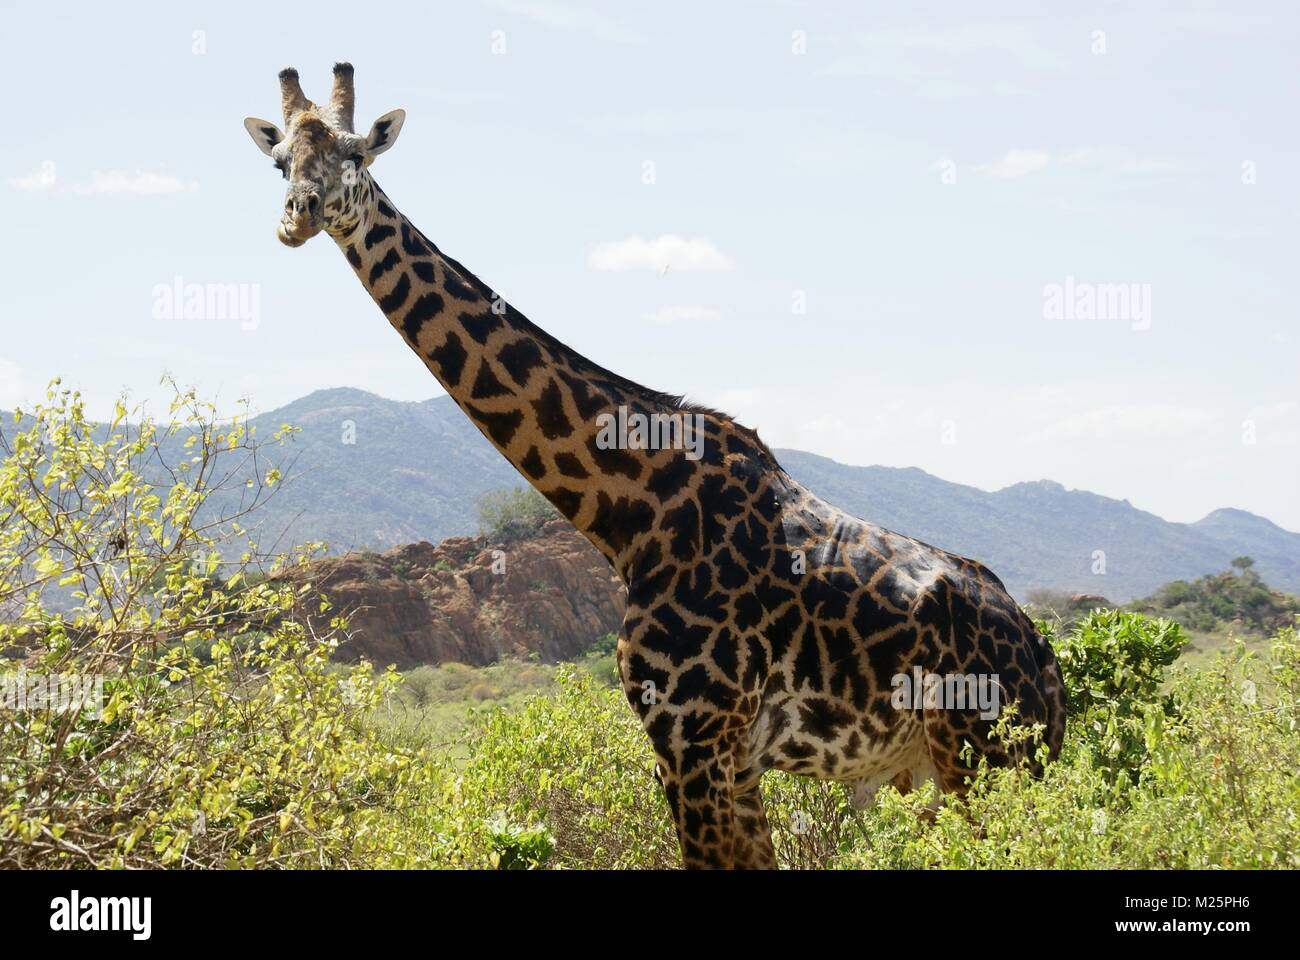 giraffe in kenya safari trip - Stock Image